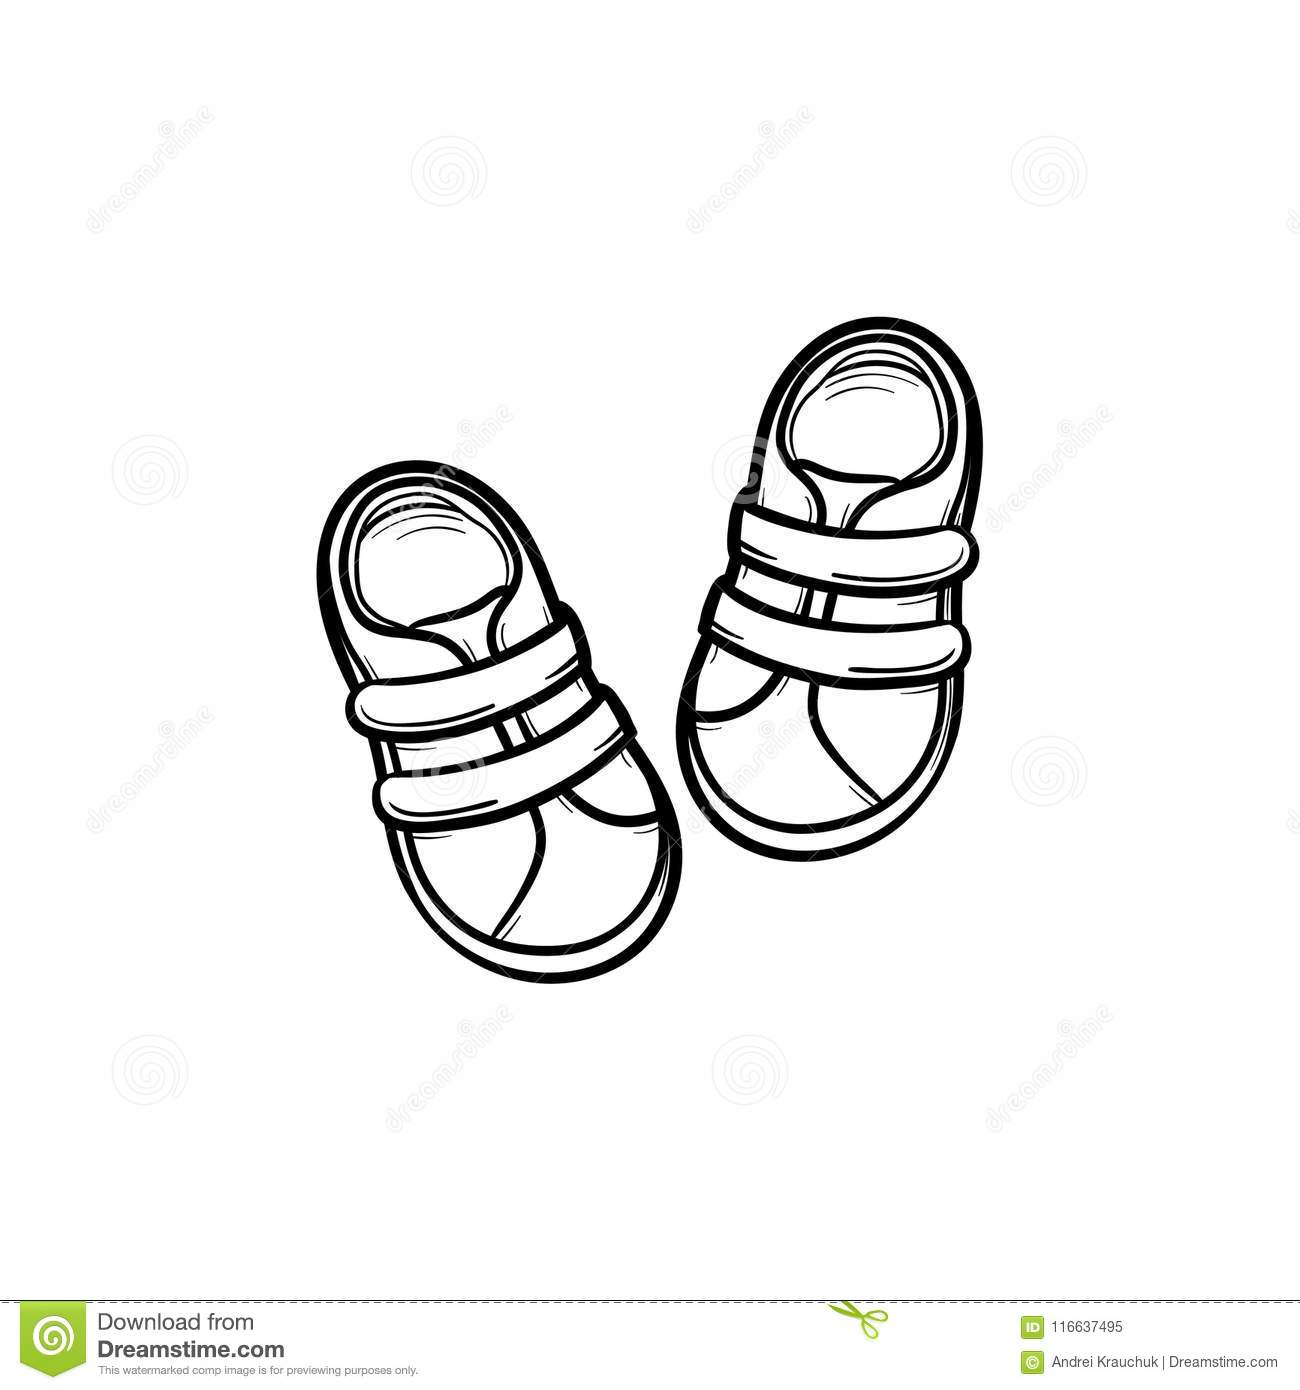 Baby Shoes Hand Drawn Outline Doodle Icon Stock Vector Illustration Of Footwear Outline 116637495